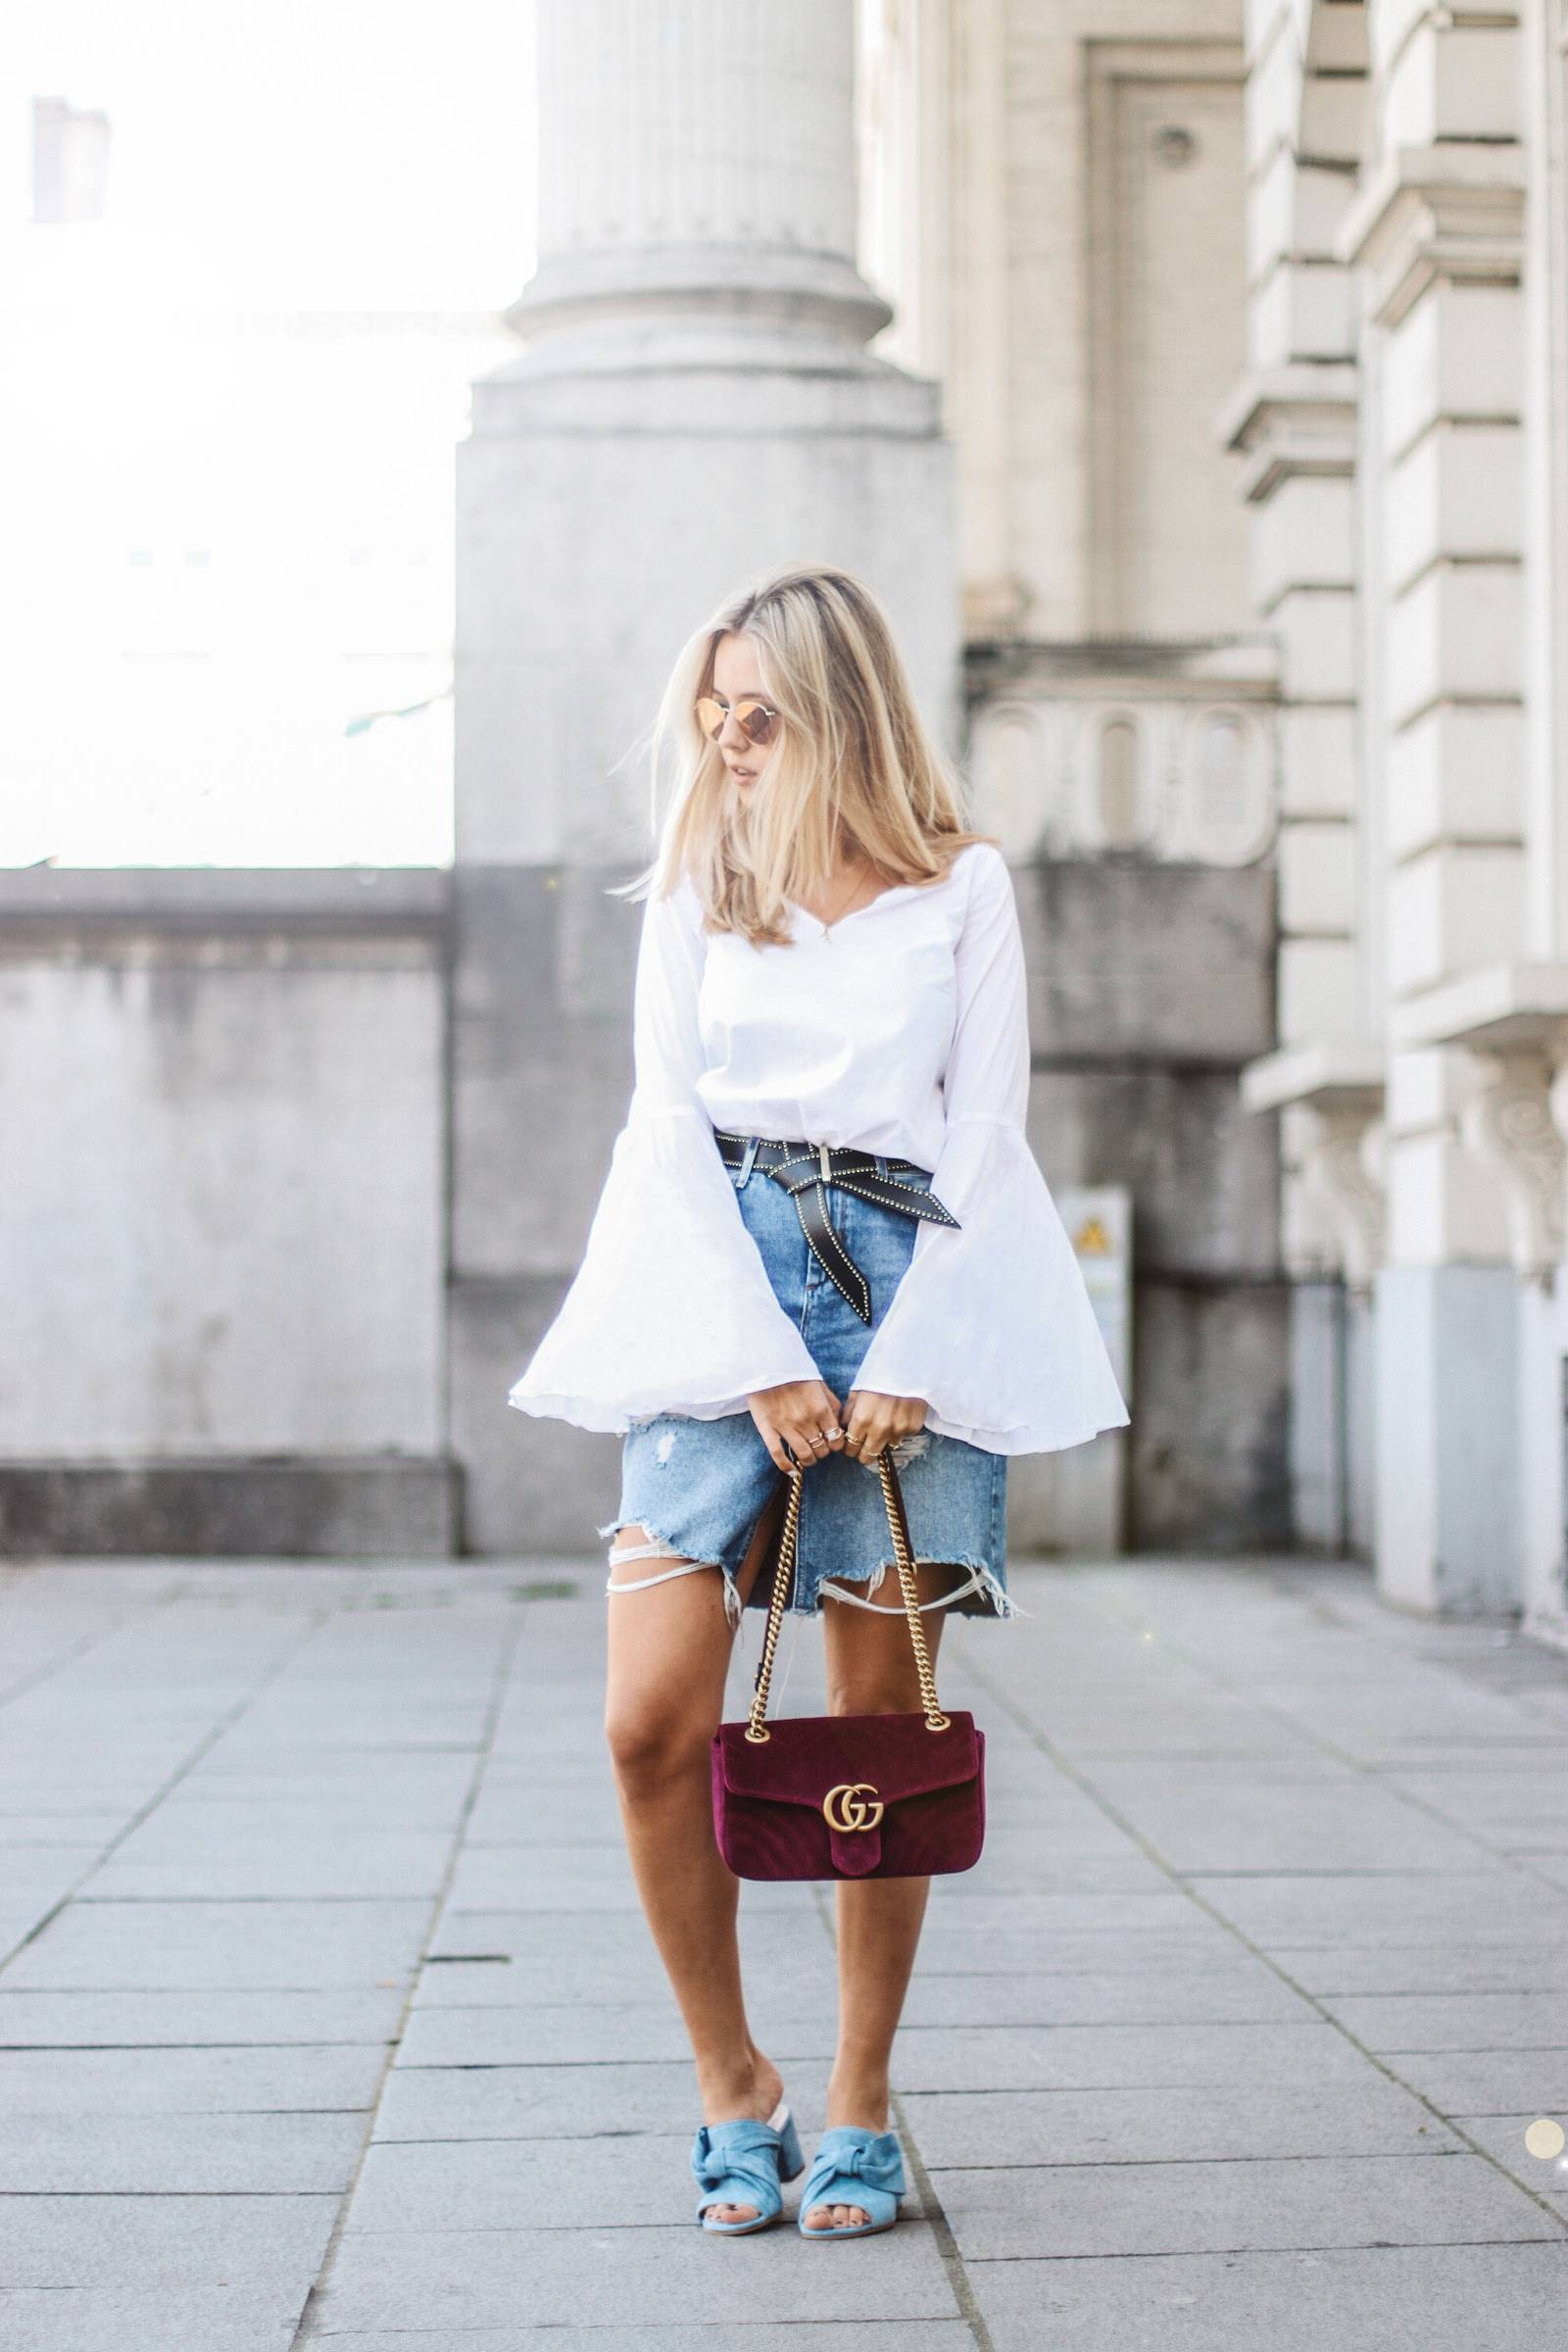 Gucci Marmont, blue sandals, denim skirt and  wide sleeves blouse